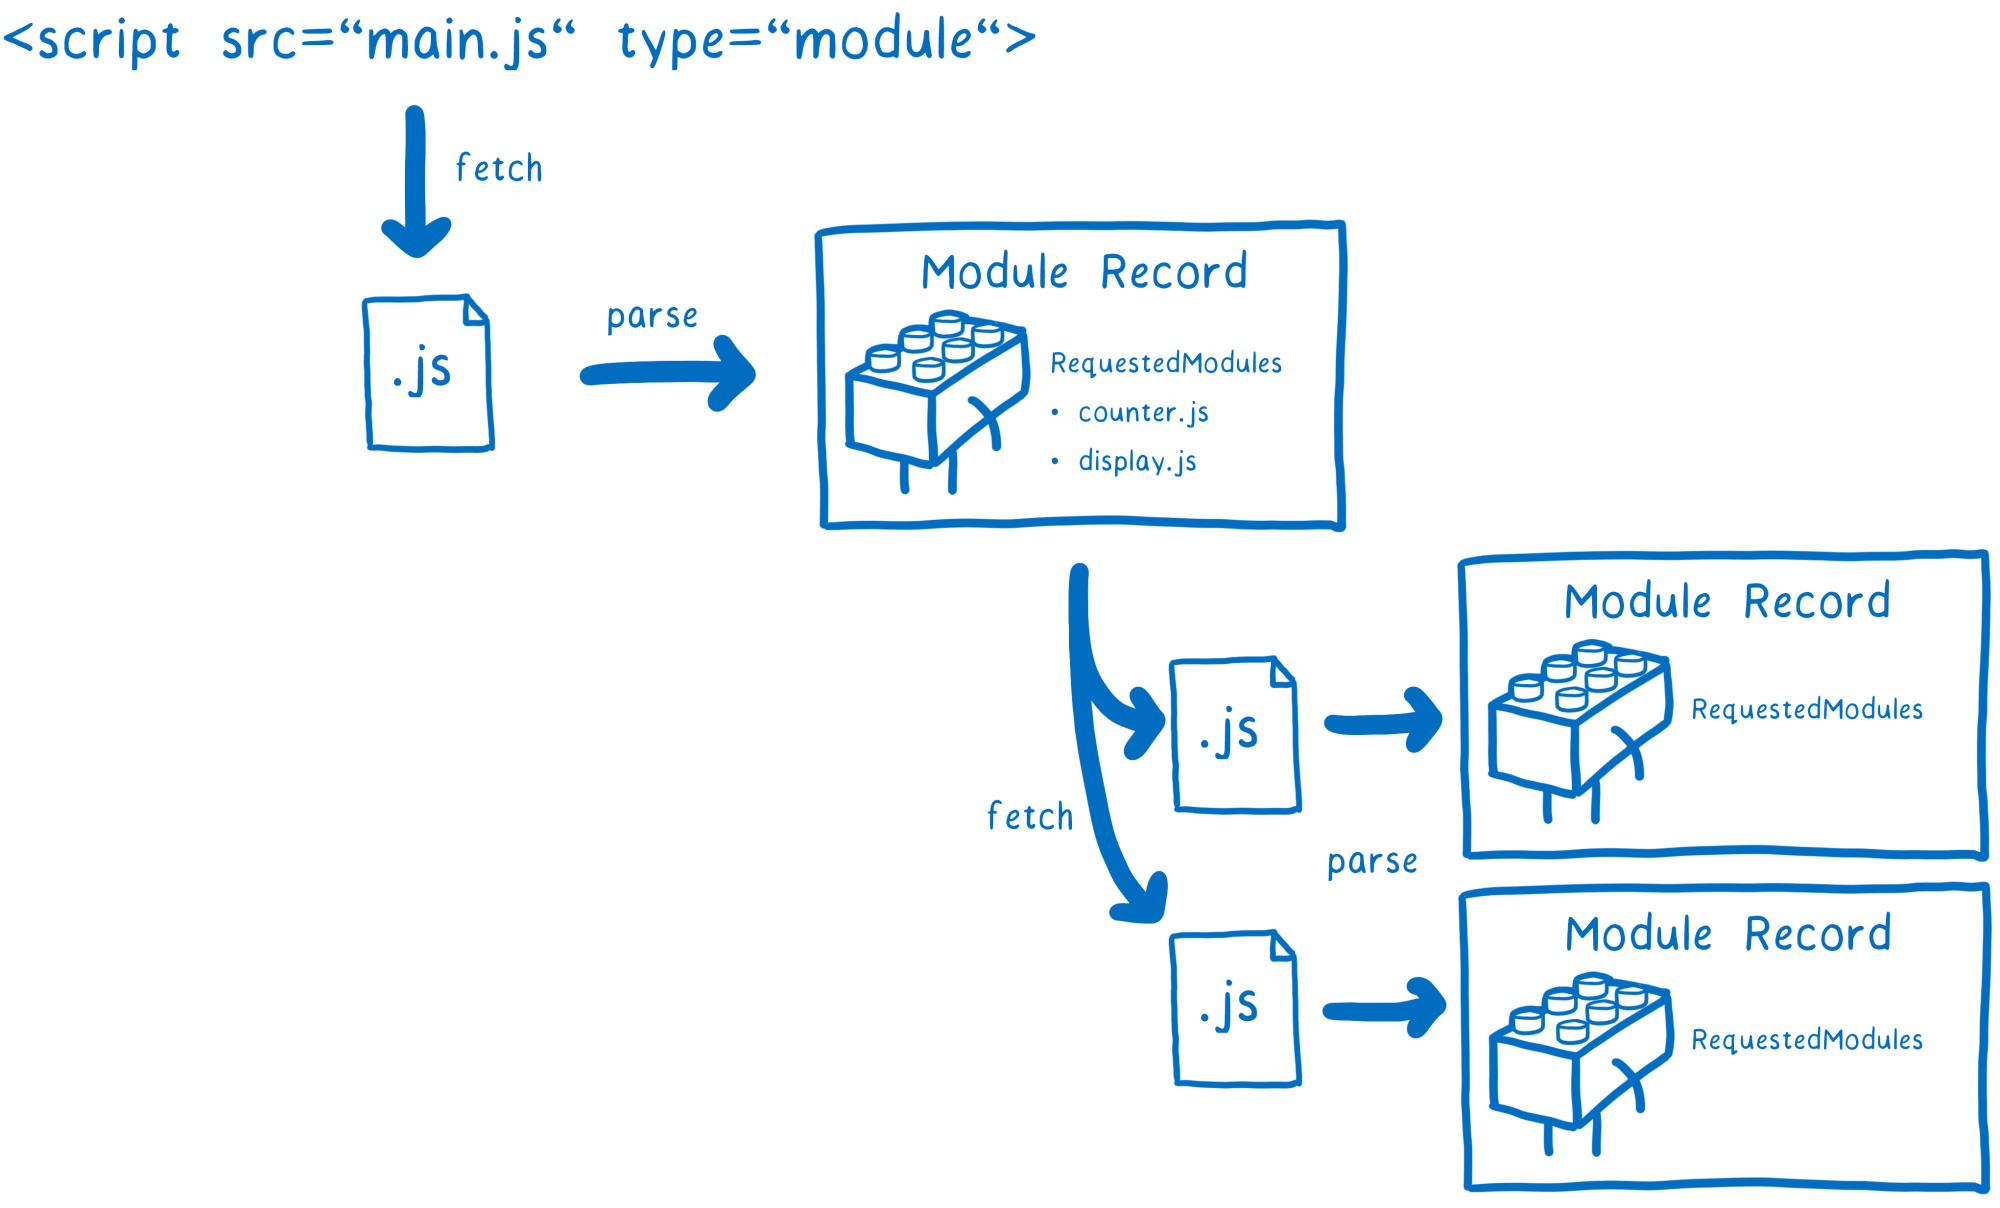 hight resolution of a diagram that shows one file being fetched and then parsed and then two more